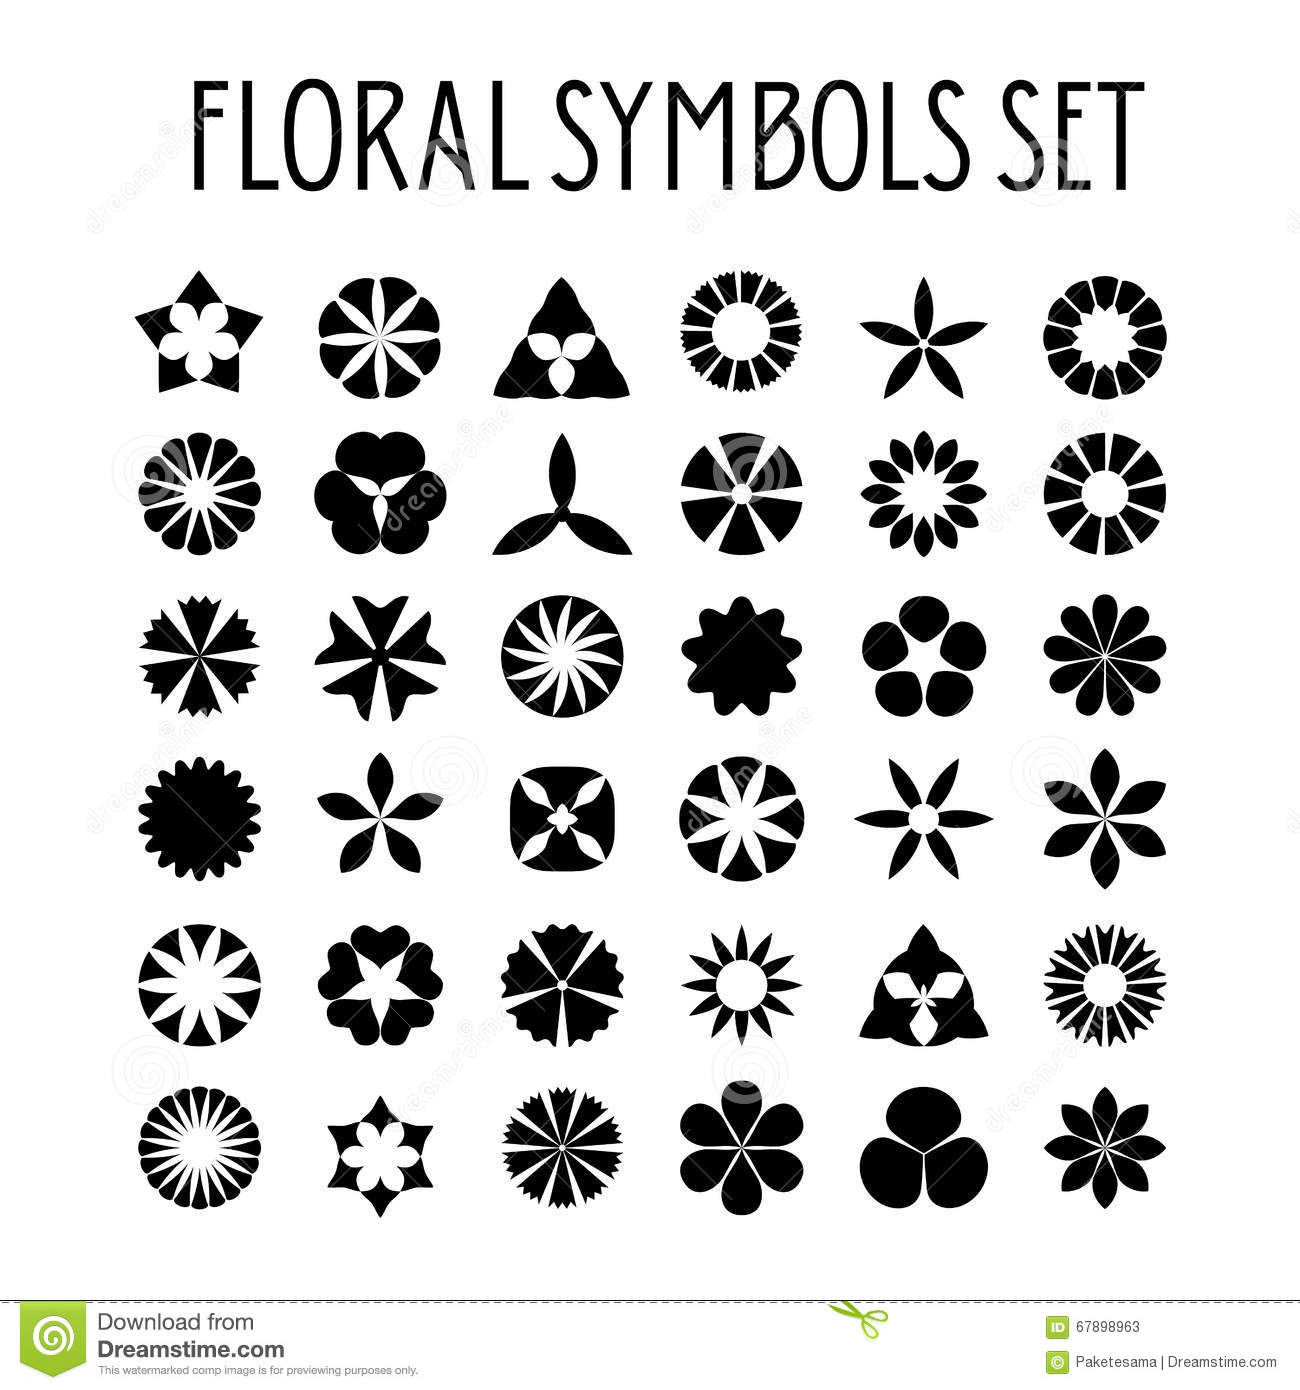 Flower symbols set stock vector illustration of daisy 67898963 flower symbols set biocorpaavc Image collections